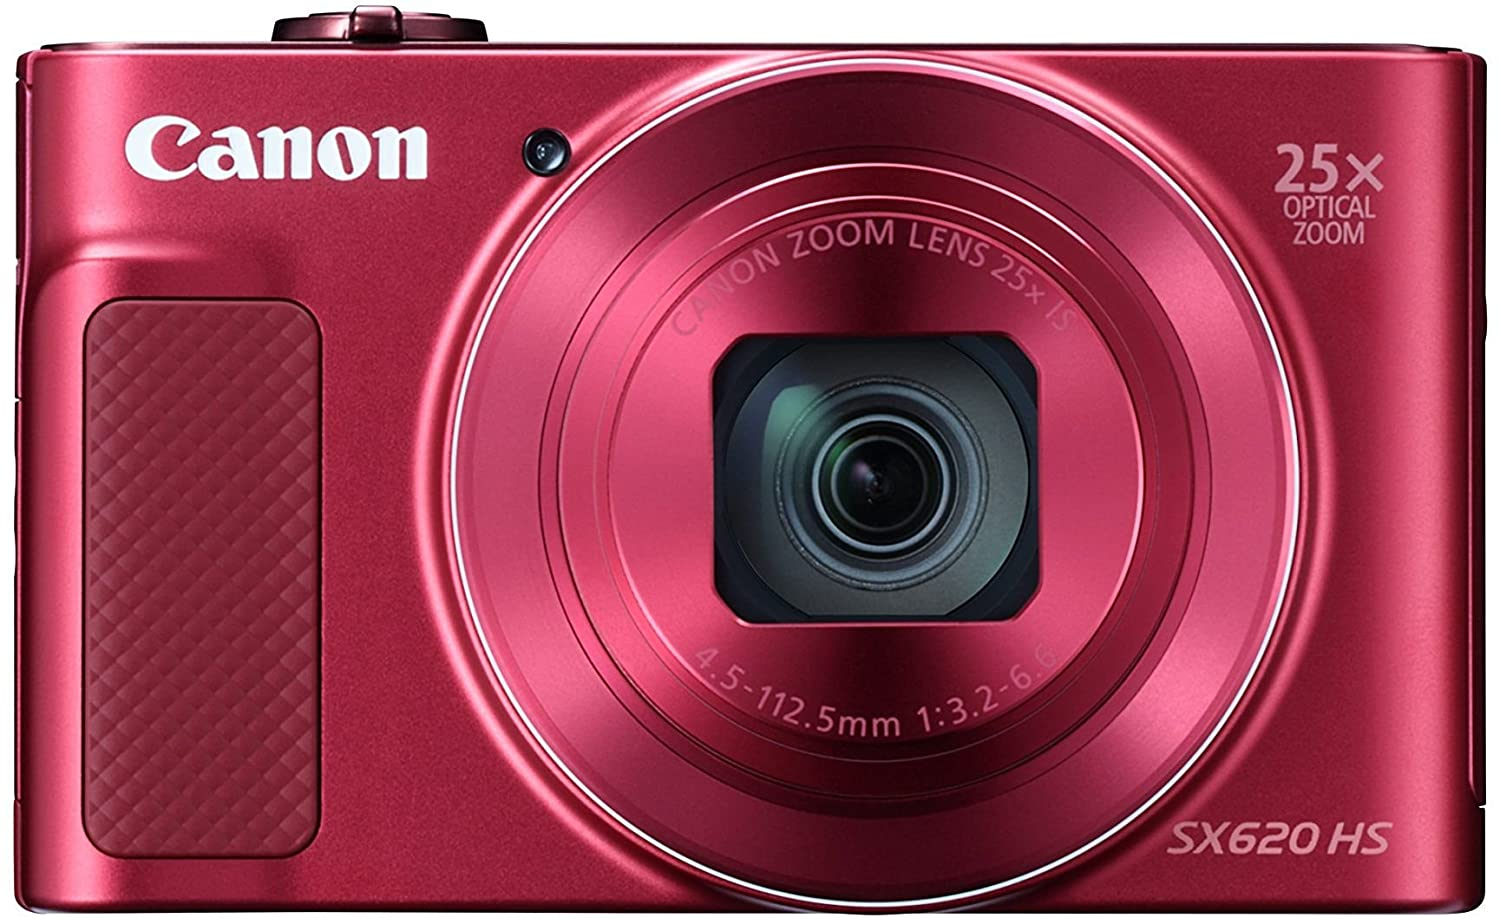 Canon PowerShot SX620 HS Digital Camera (Silver) Canon Canada (Direct) 1074C001